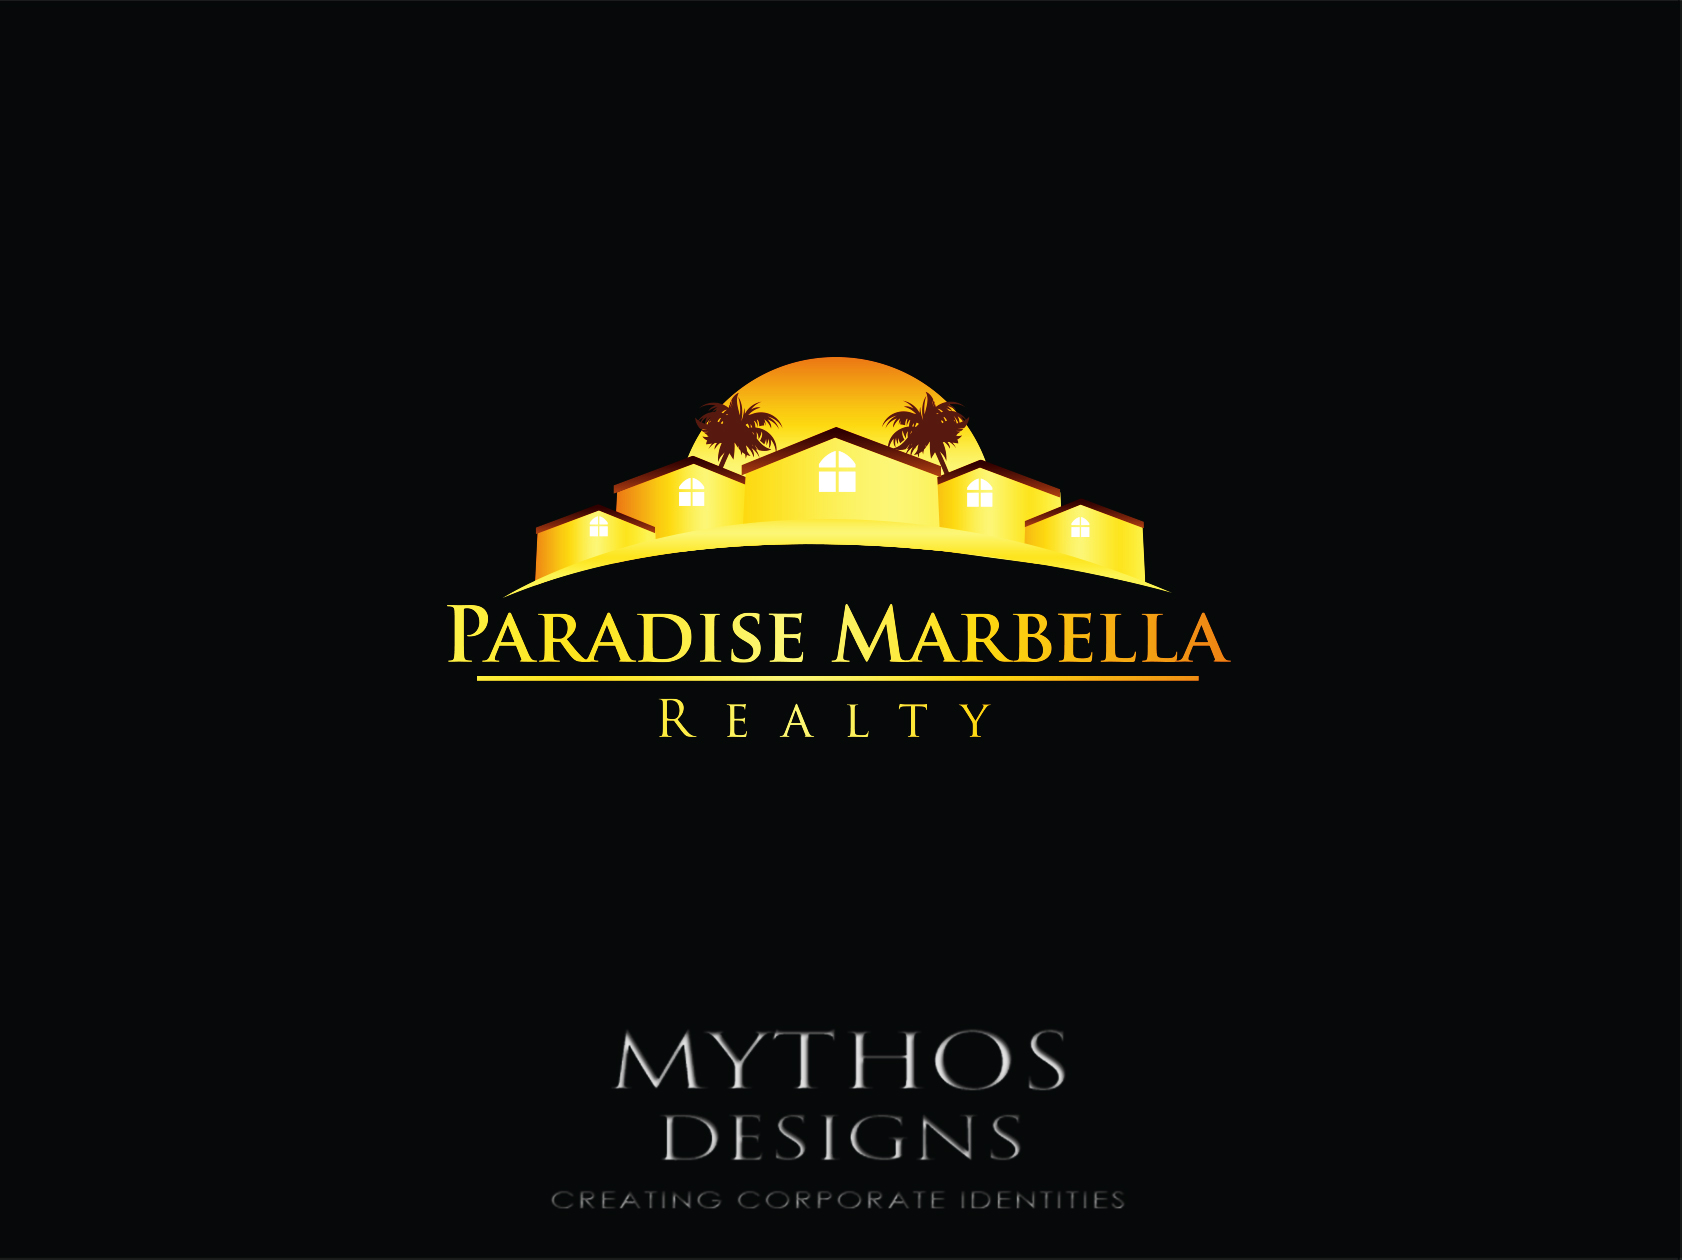 Logo Design by Mythos Designs - Entry No. 49 in the Logo Design Contest Captivating Logo Design for Paradise Marbella Realty.